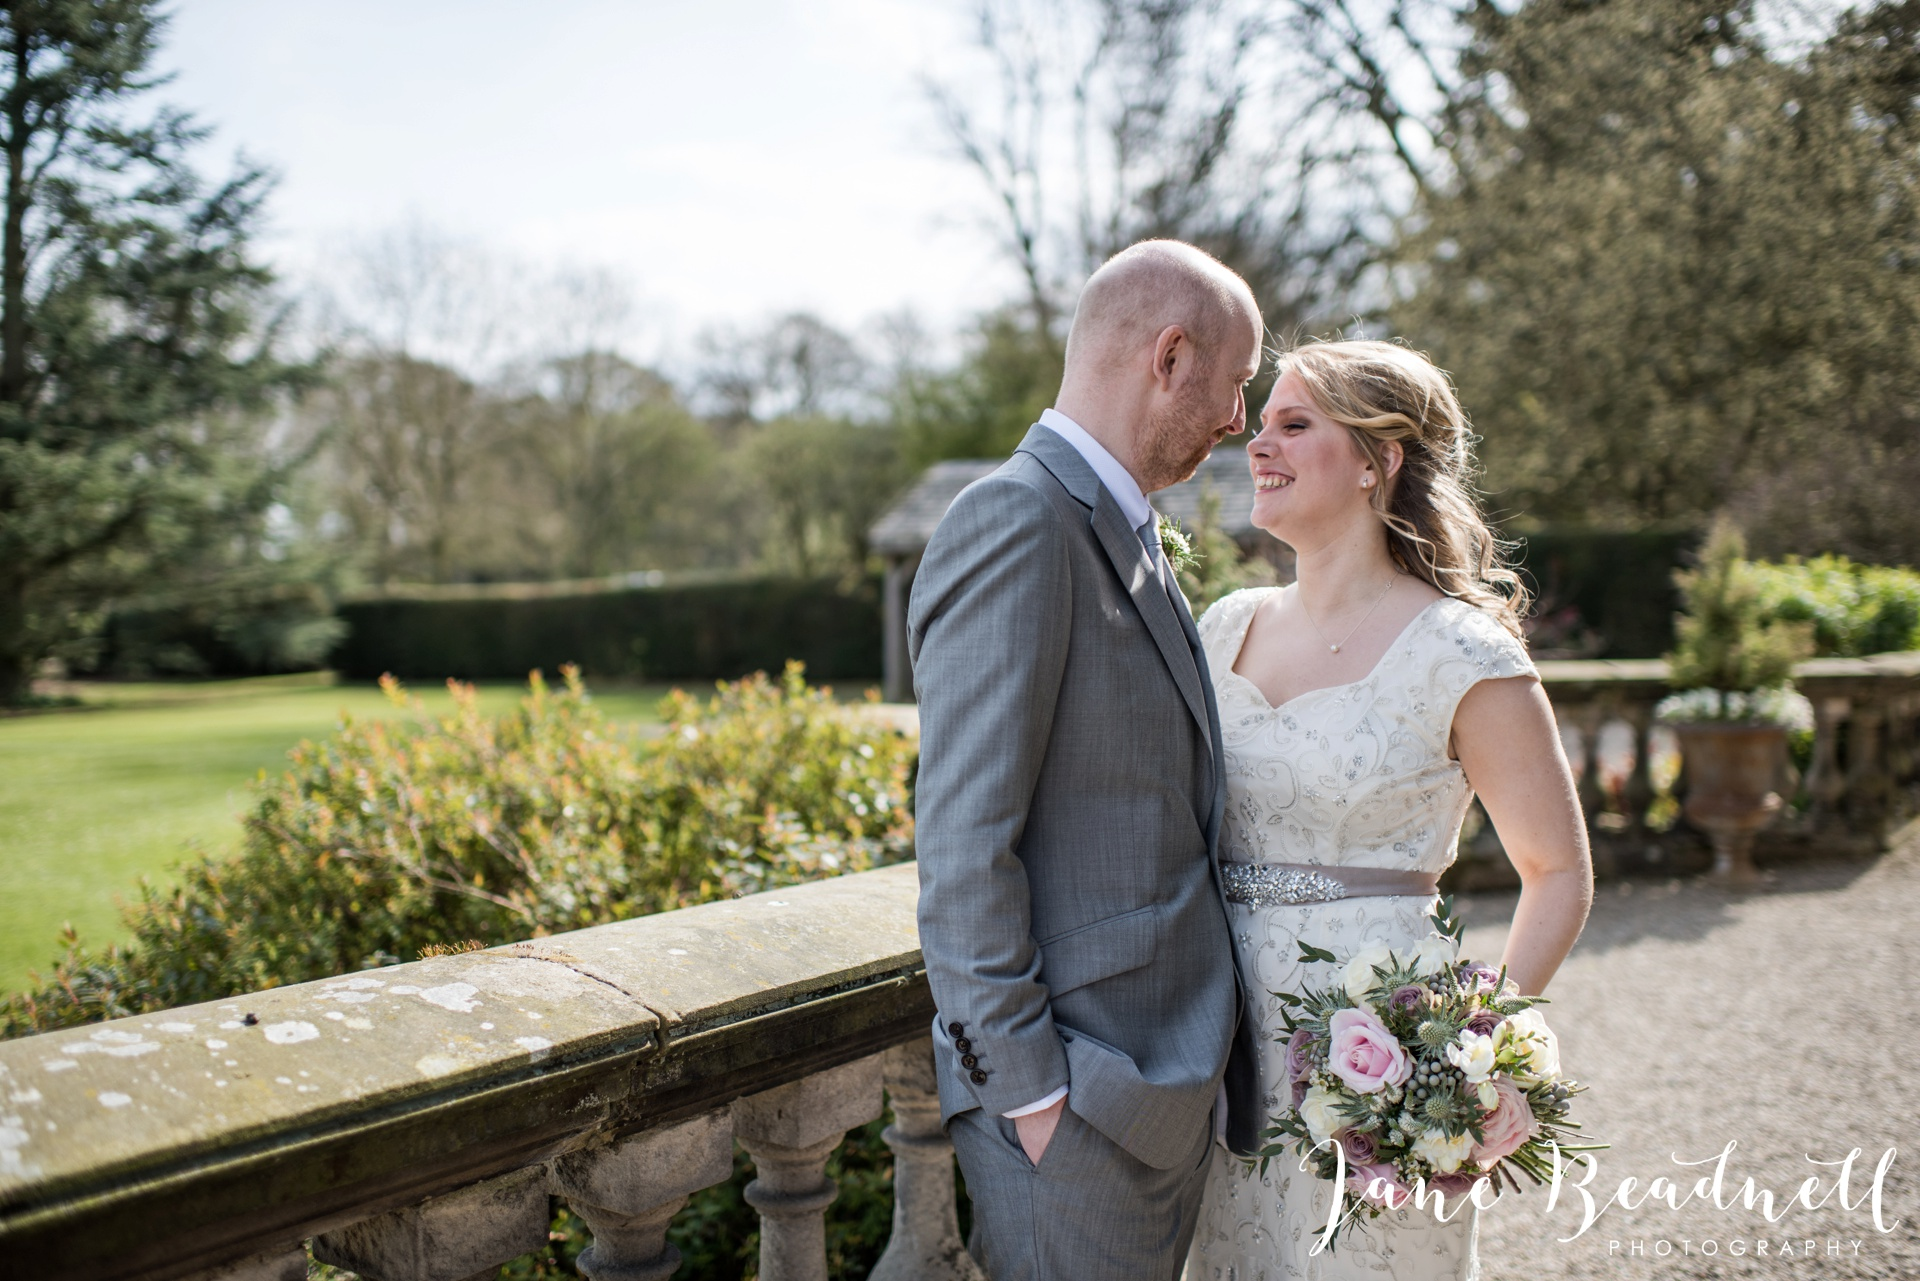 Middleton Lodge wedding photography by fine art wedding photographer Jane Beadnell_0049